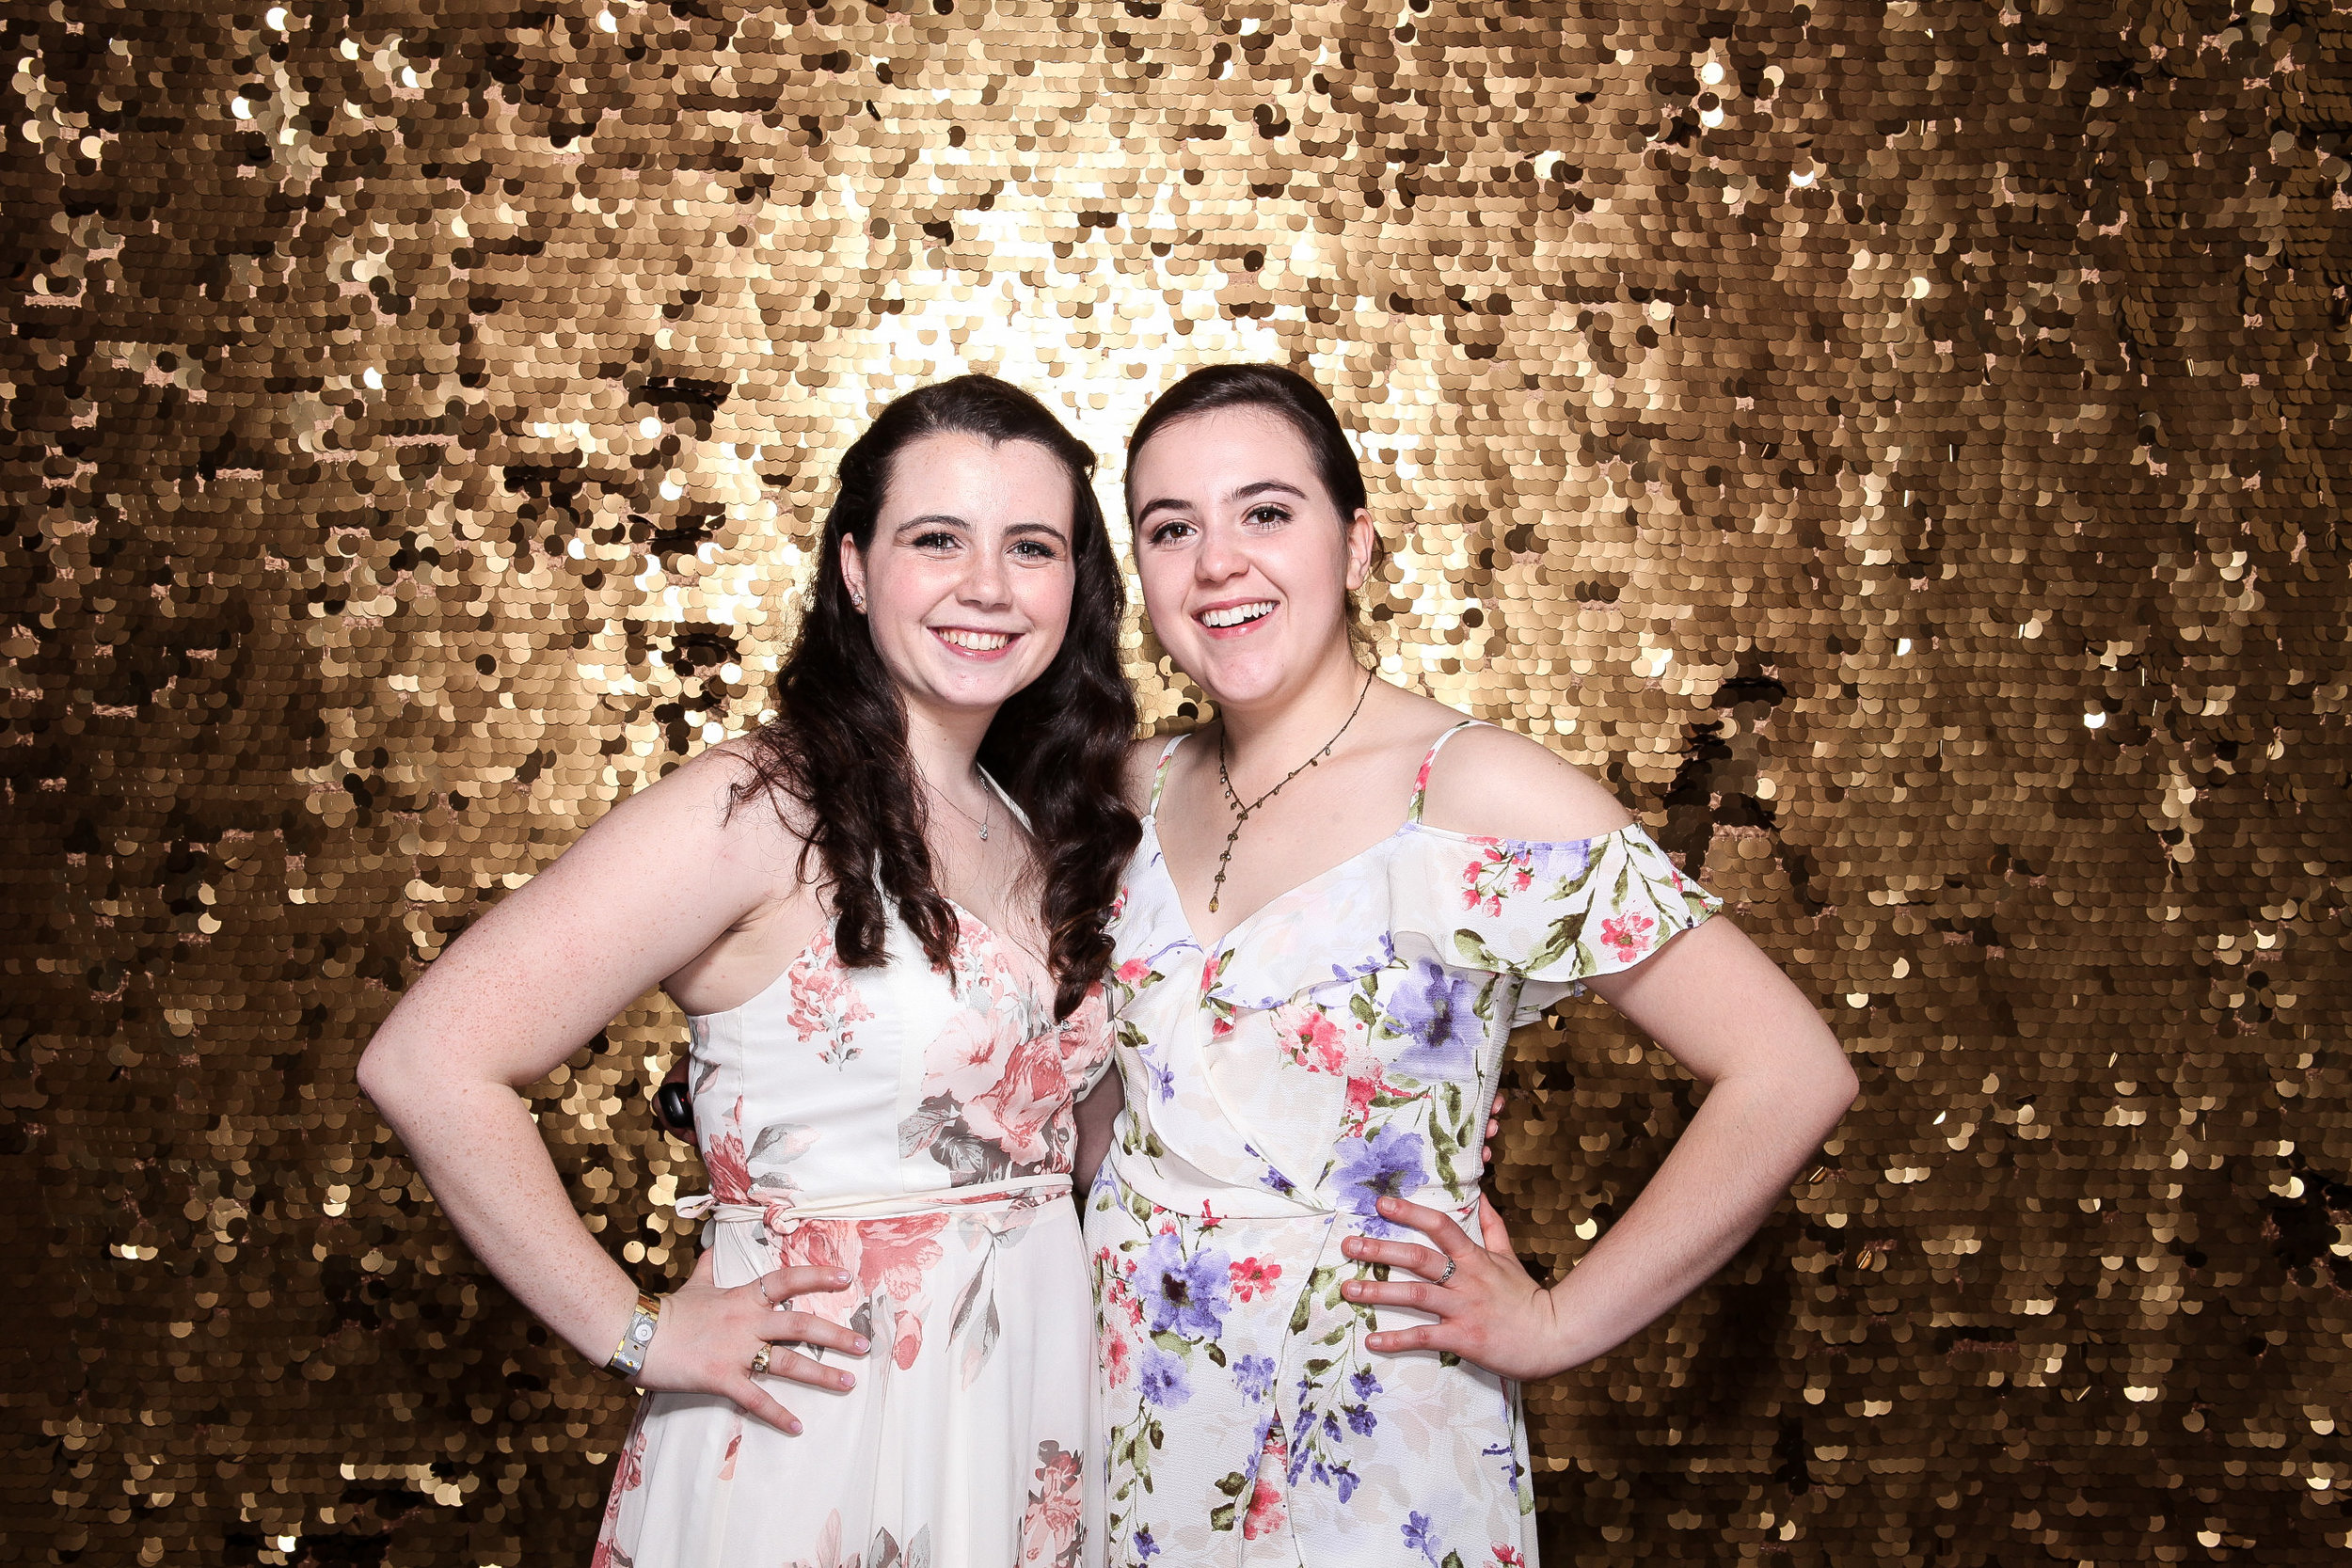 20190503_Adelphi_Senior_Formal-218.jpg